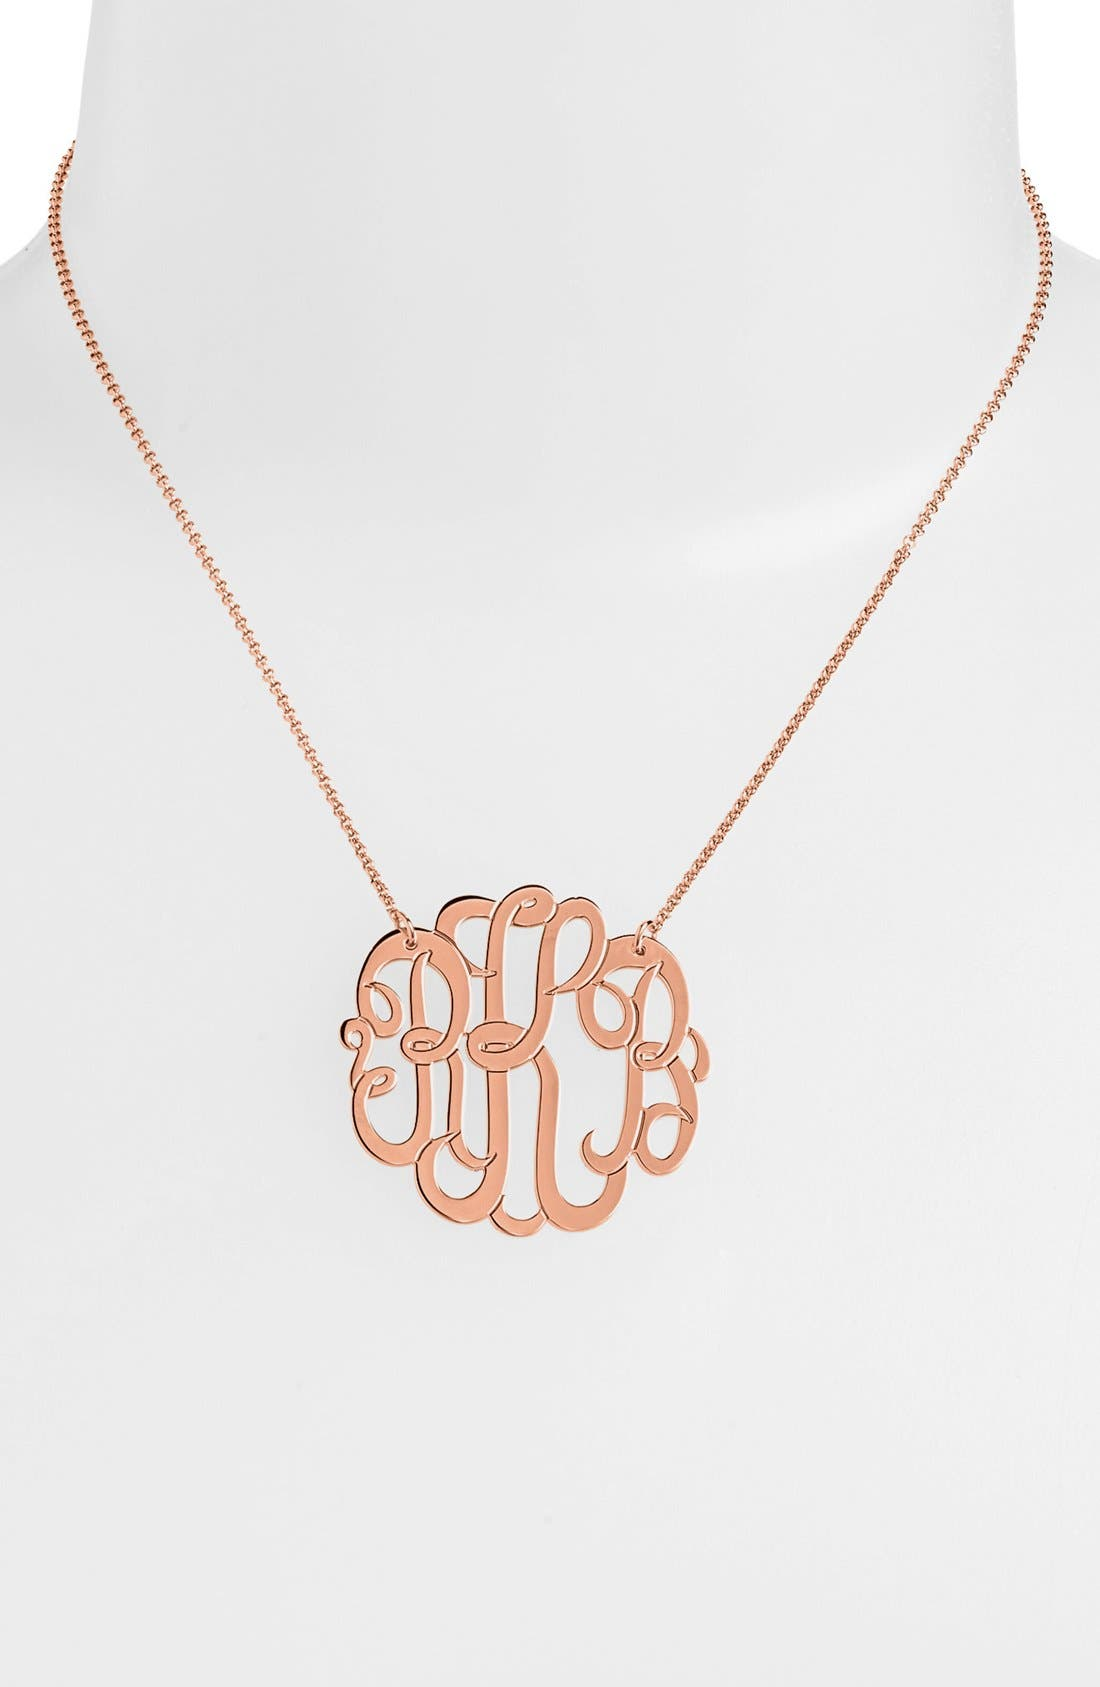 Personalized Large 3-Initial Letter Monogram Necklace,                             Main thumbnail 1, color,                             Rose Gold